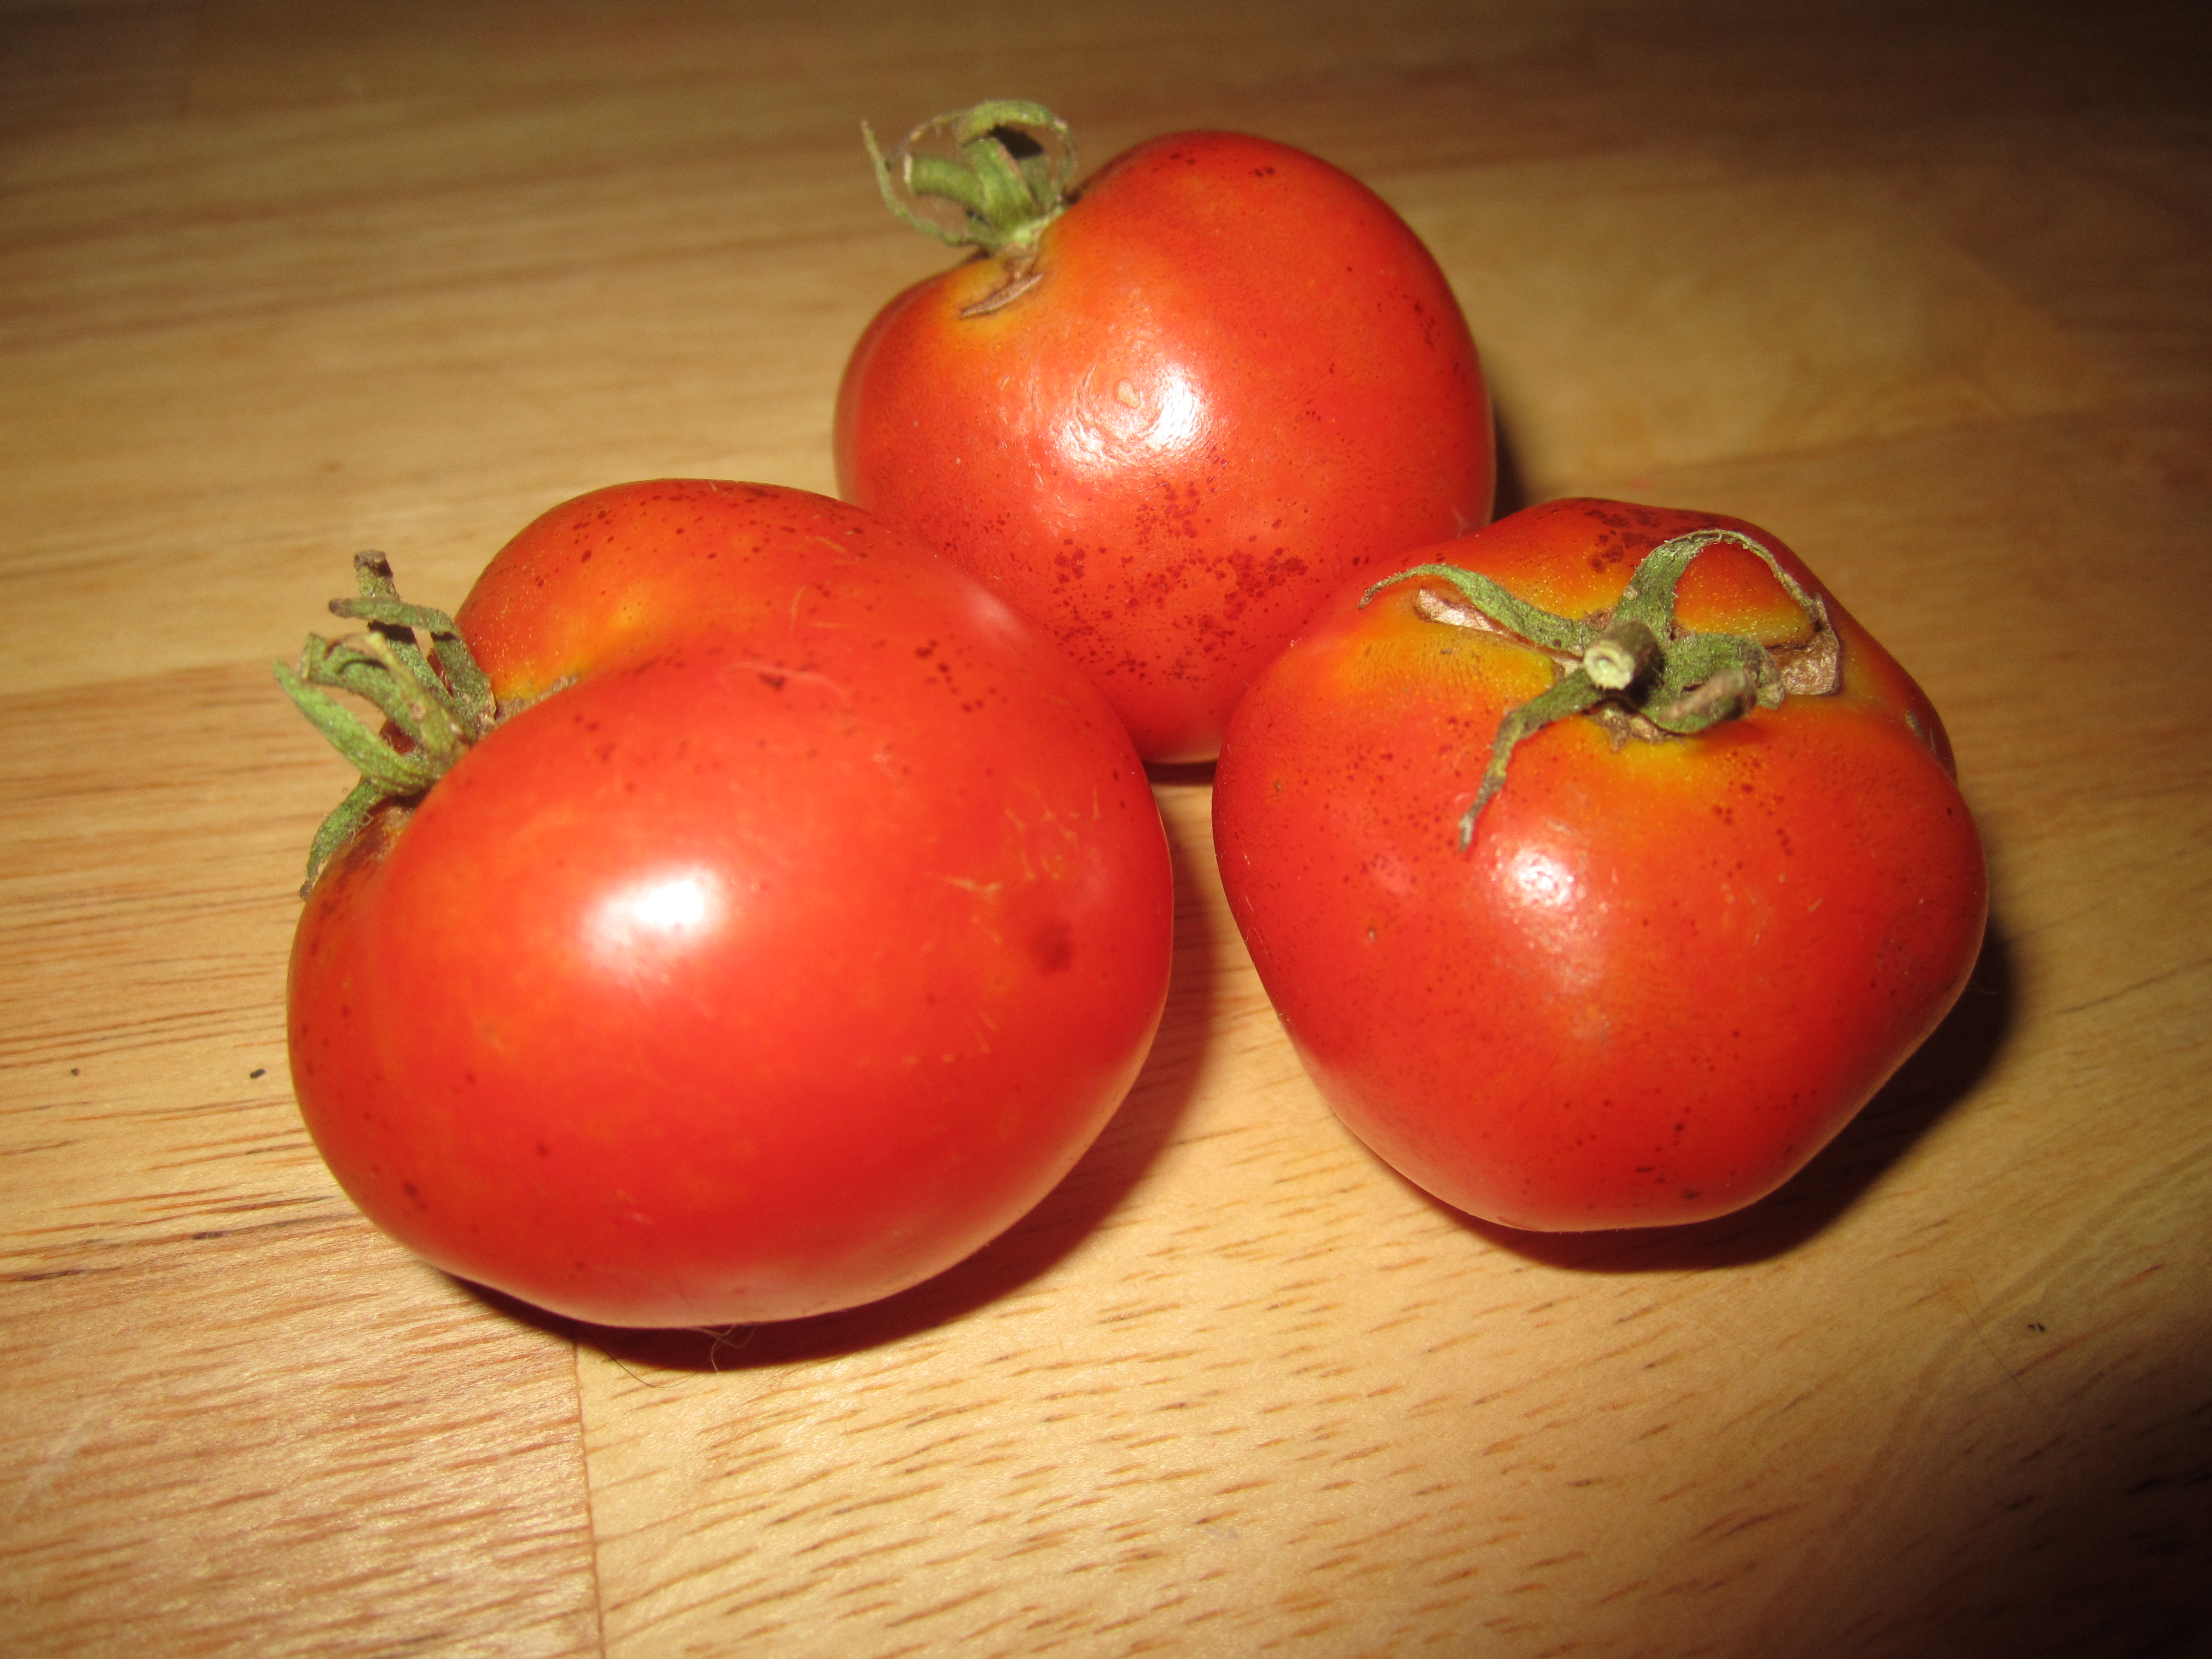 Drought conditions make for spotty tomatoes